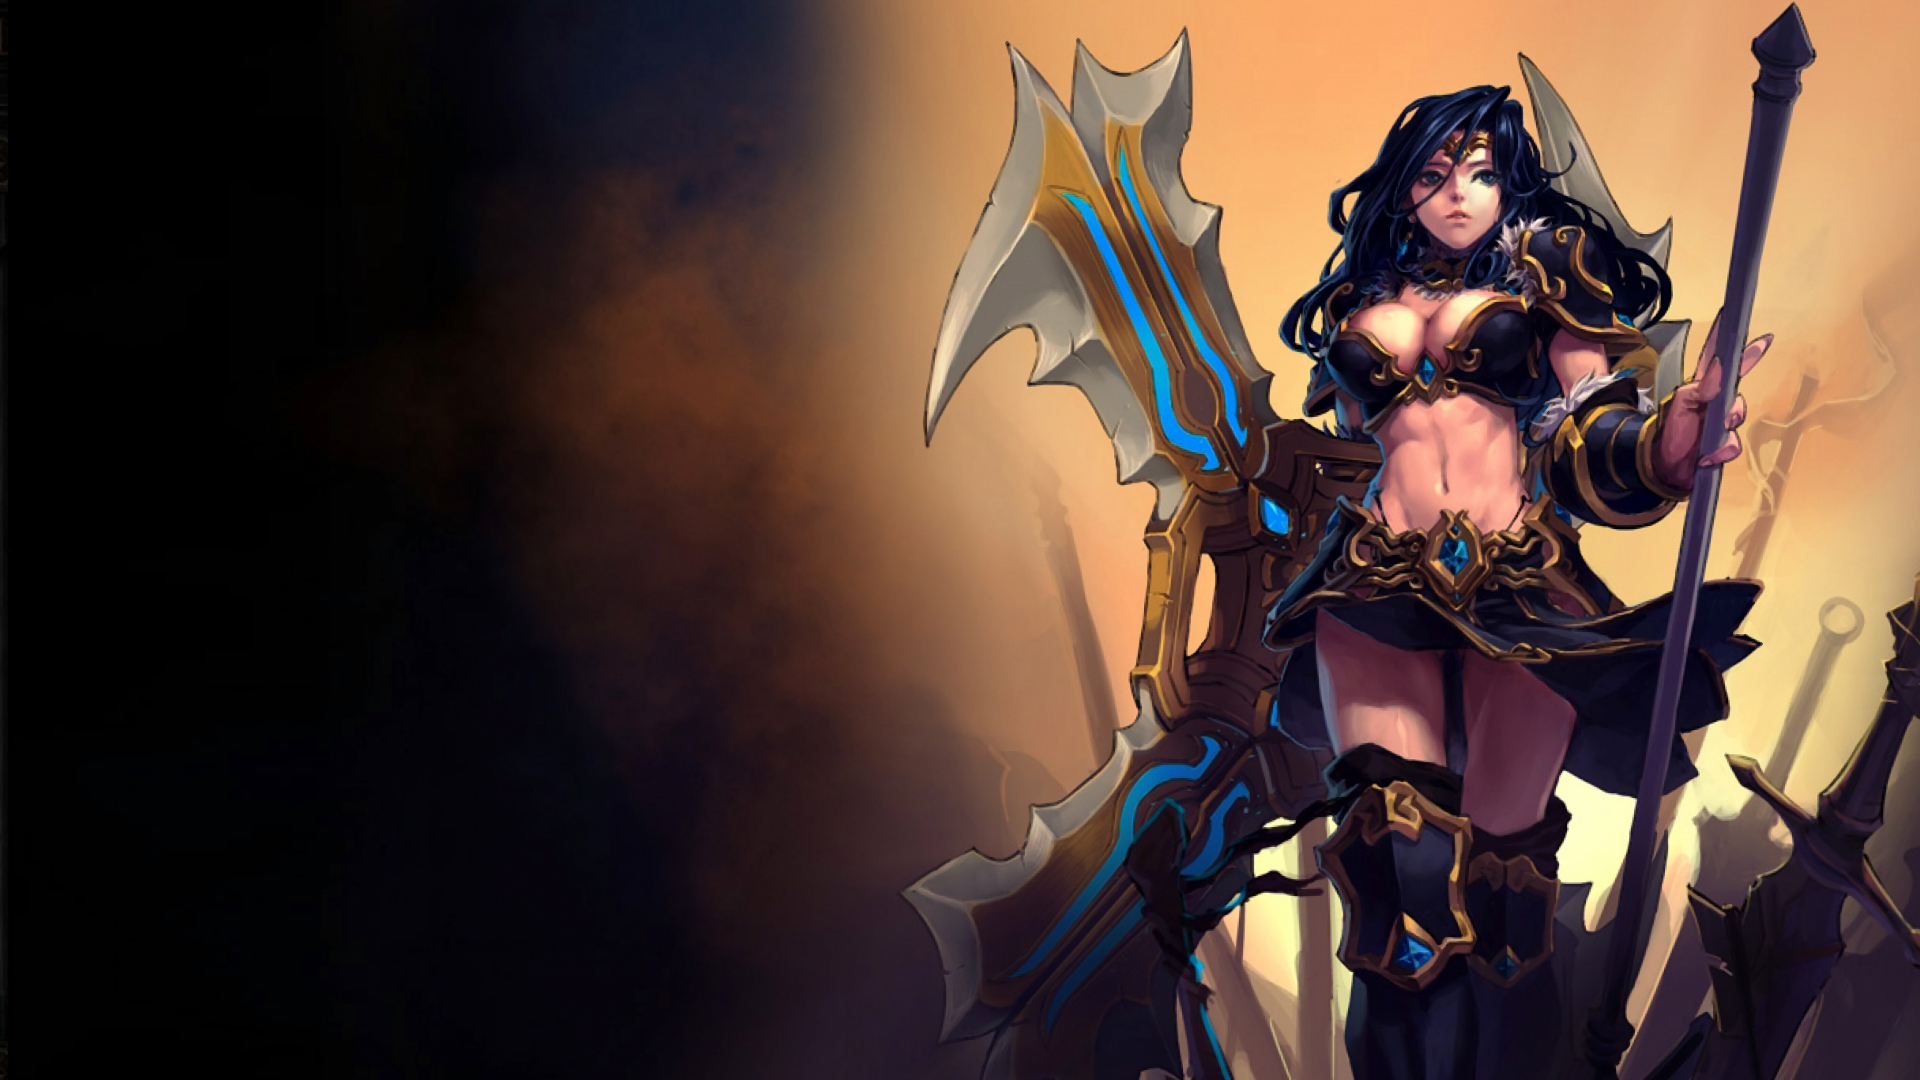 Sivir Sexy Girl 4t Wallpaper HD